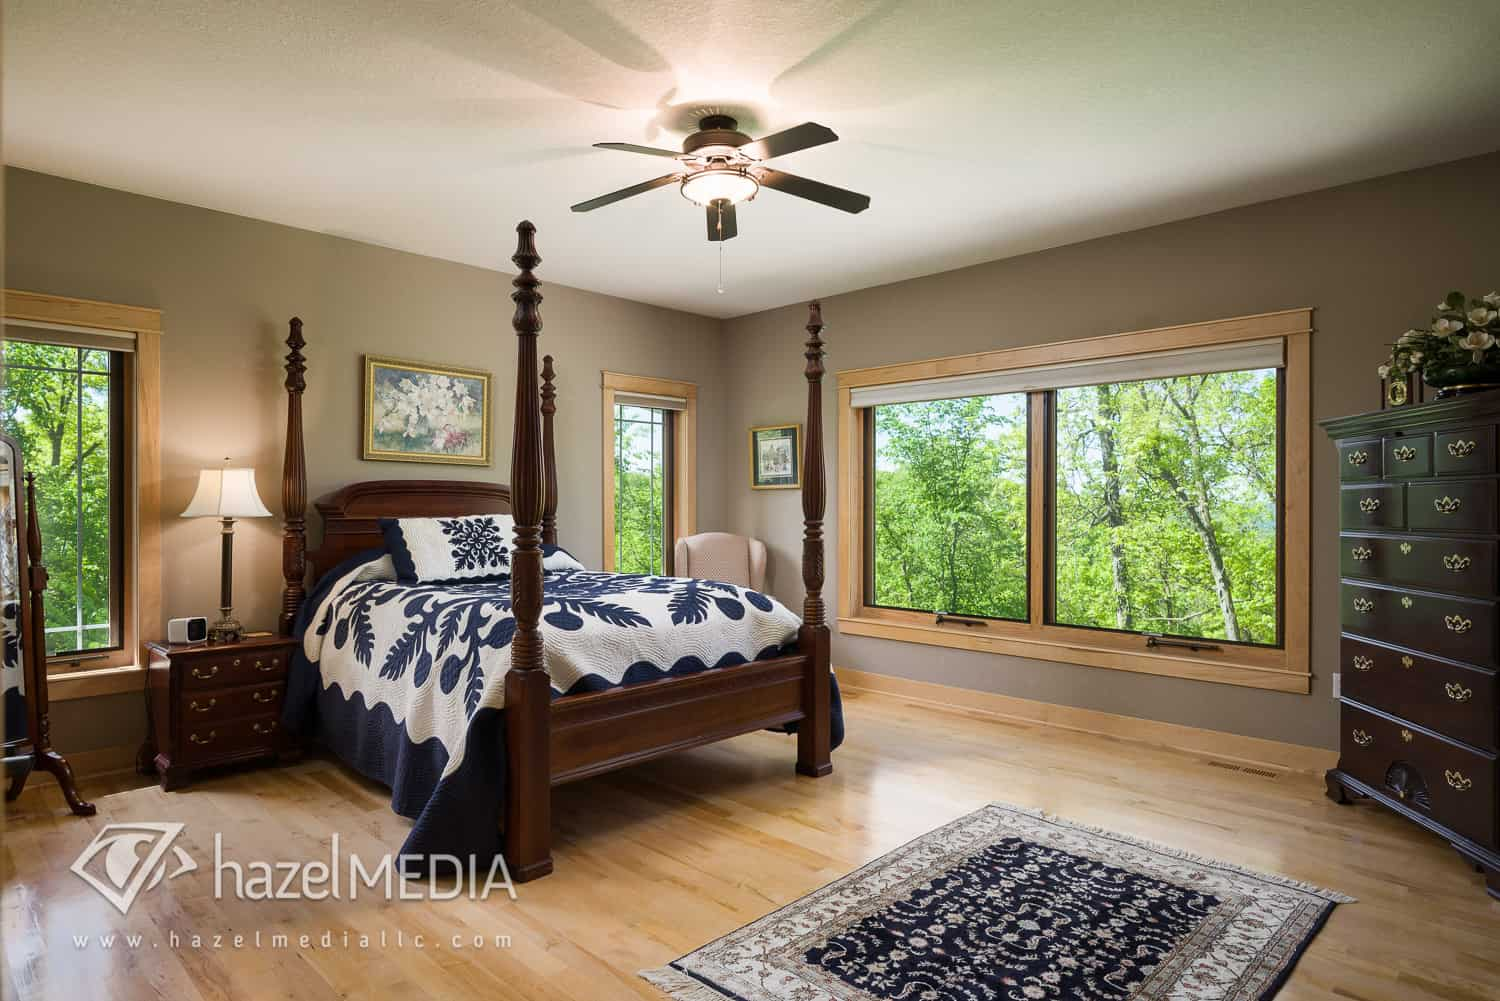 Residential_Master_Bedroom_Post_Bed